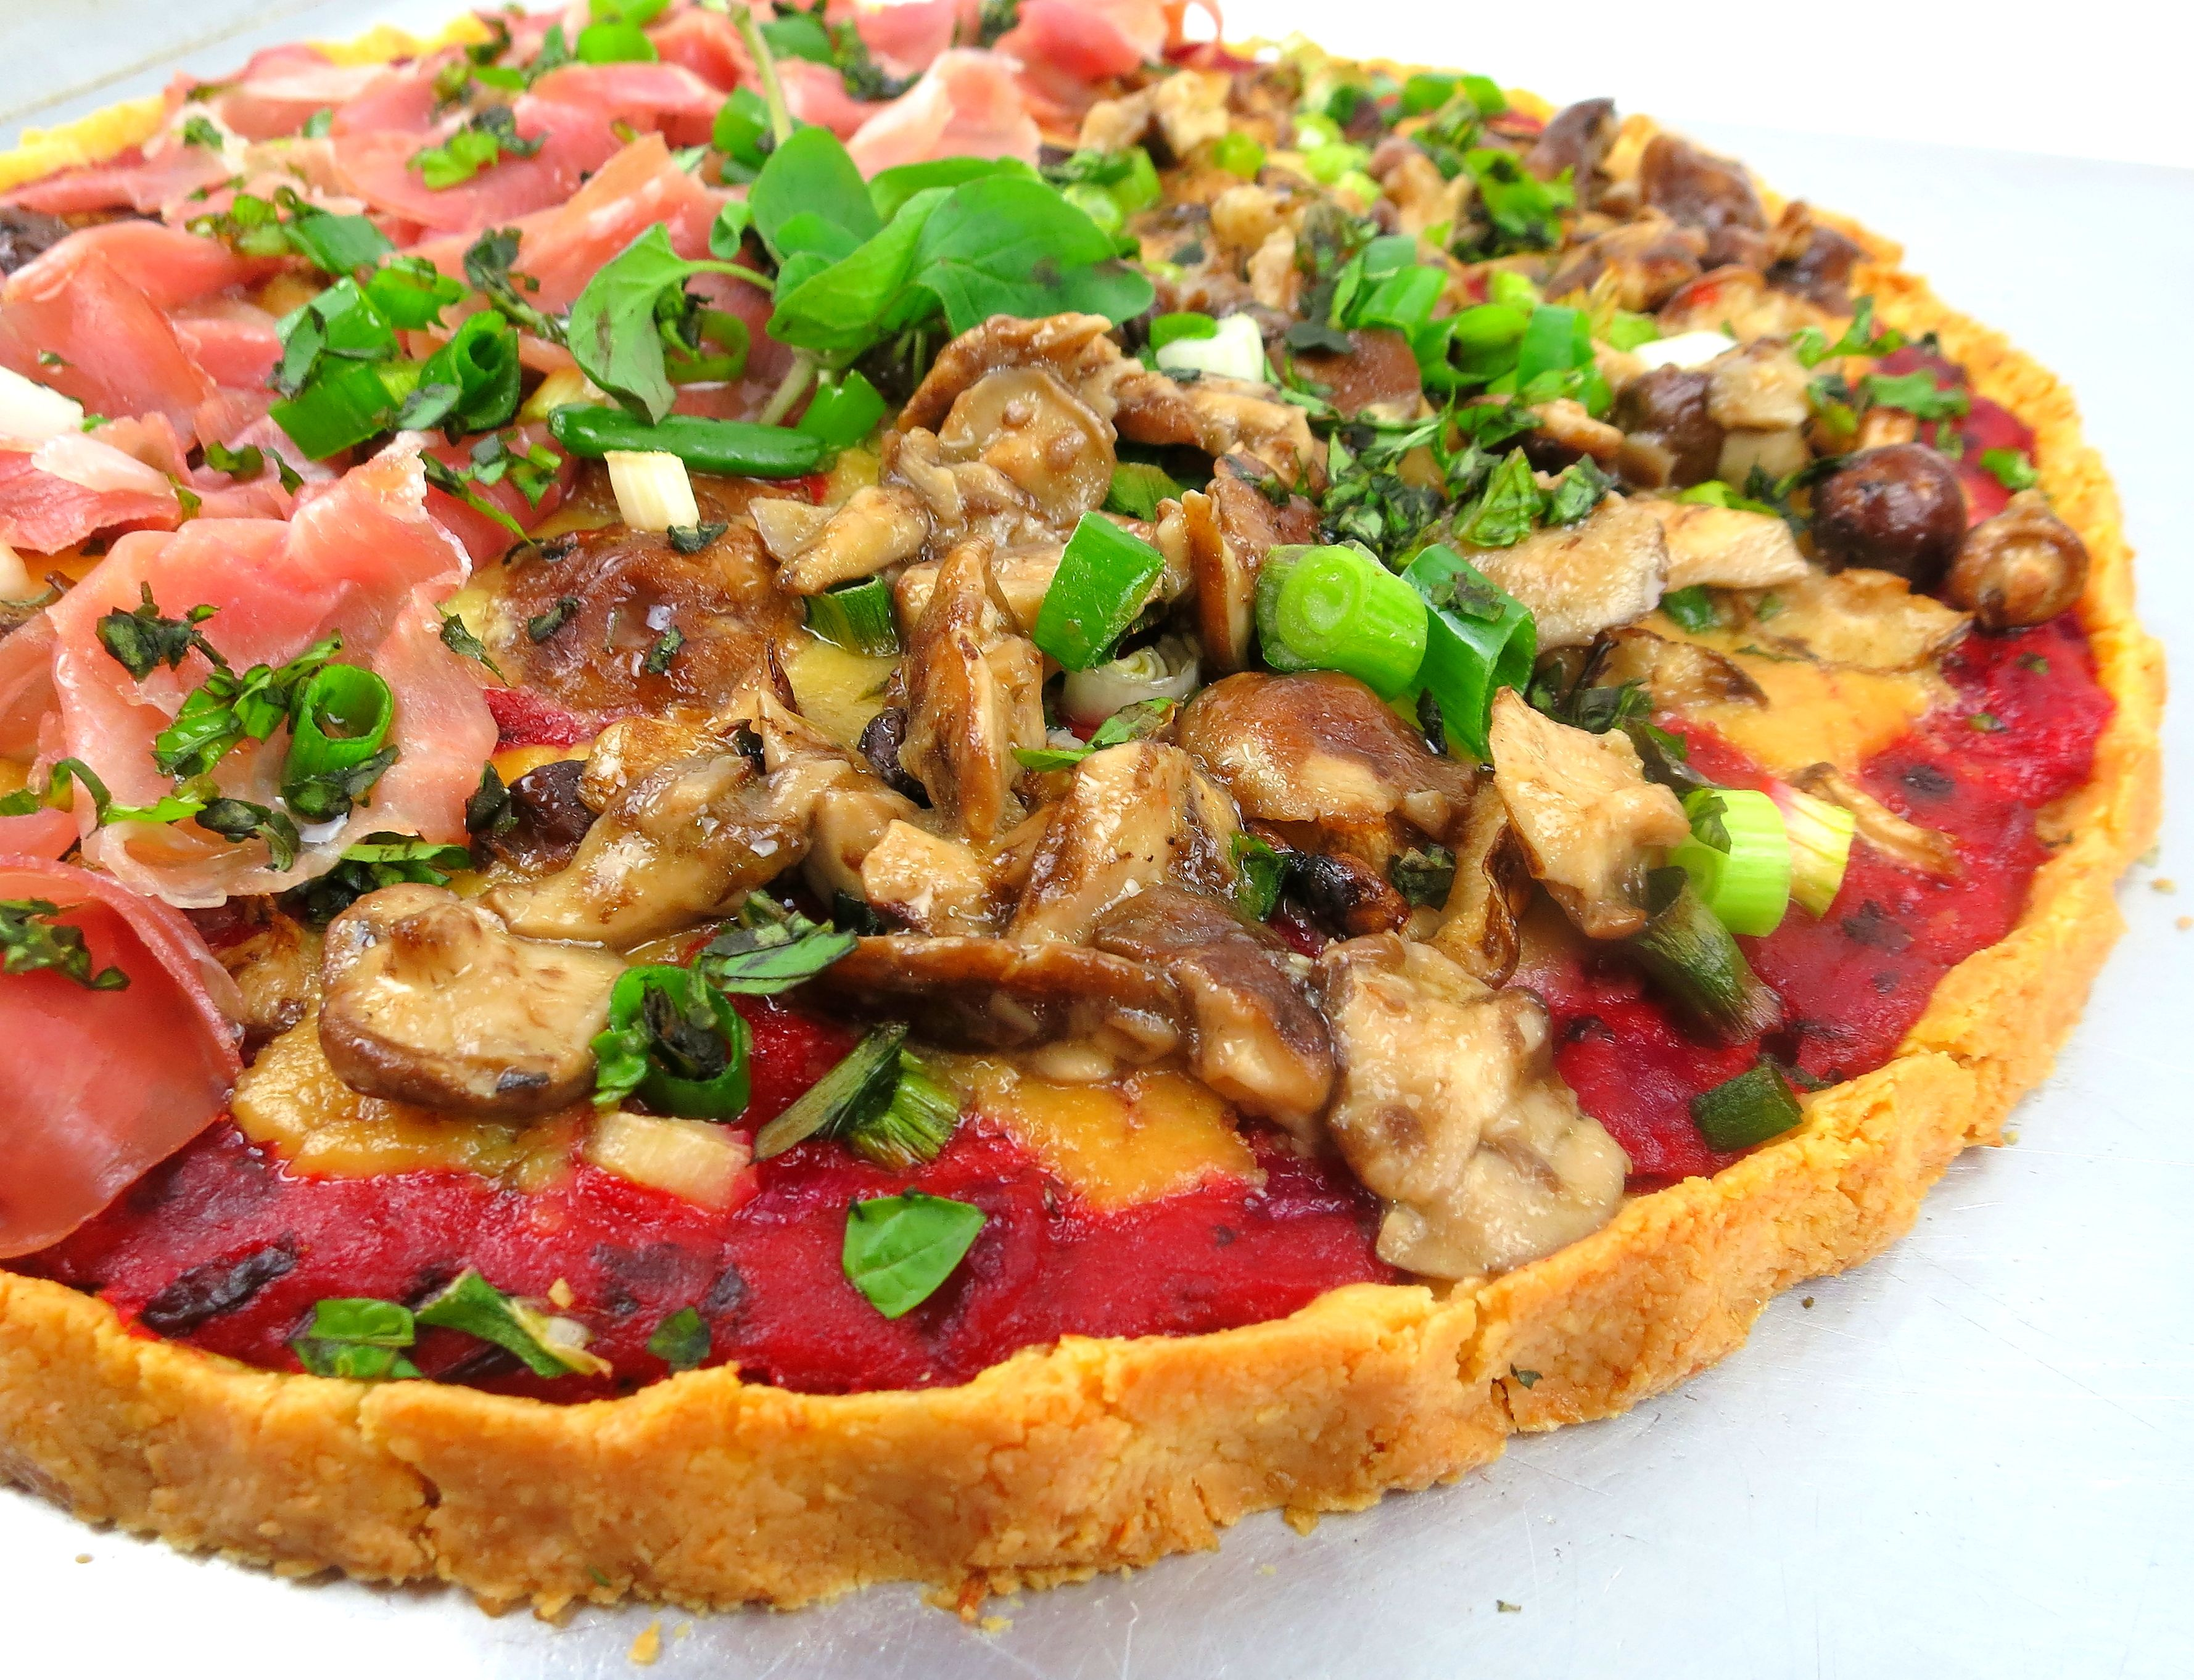 Build your own paleo pizza!